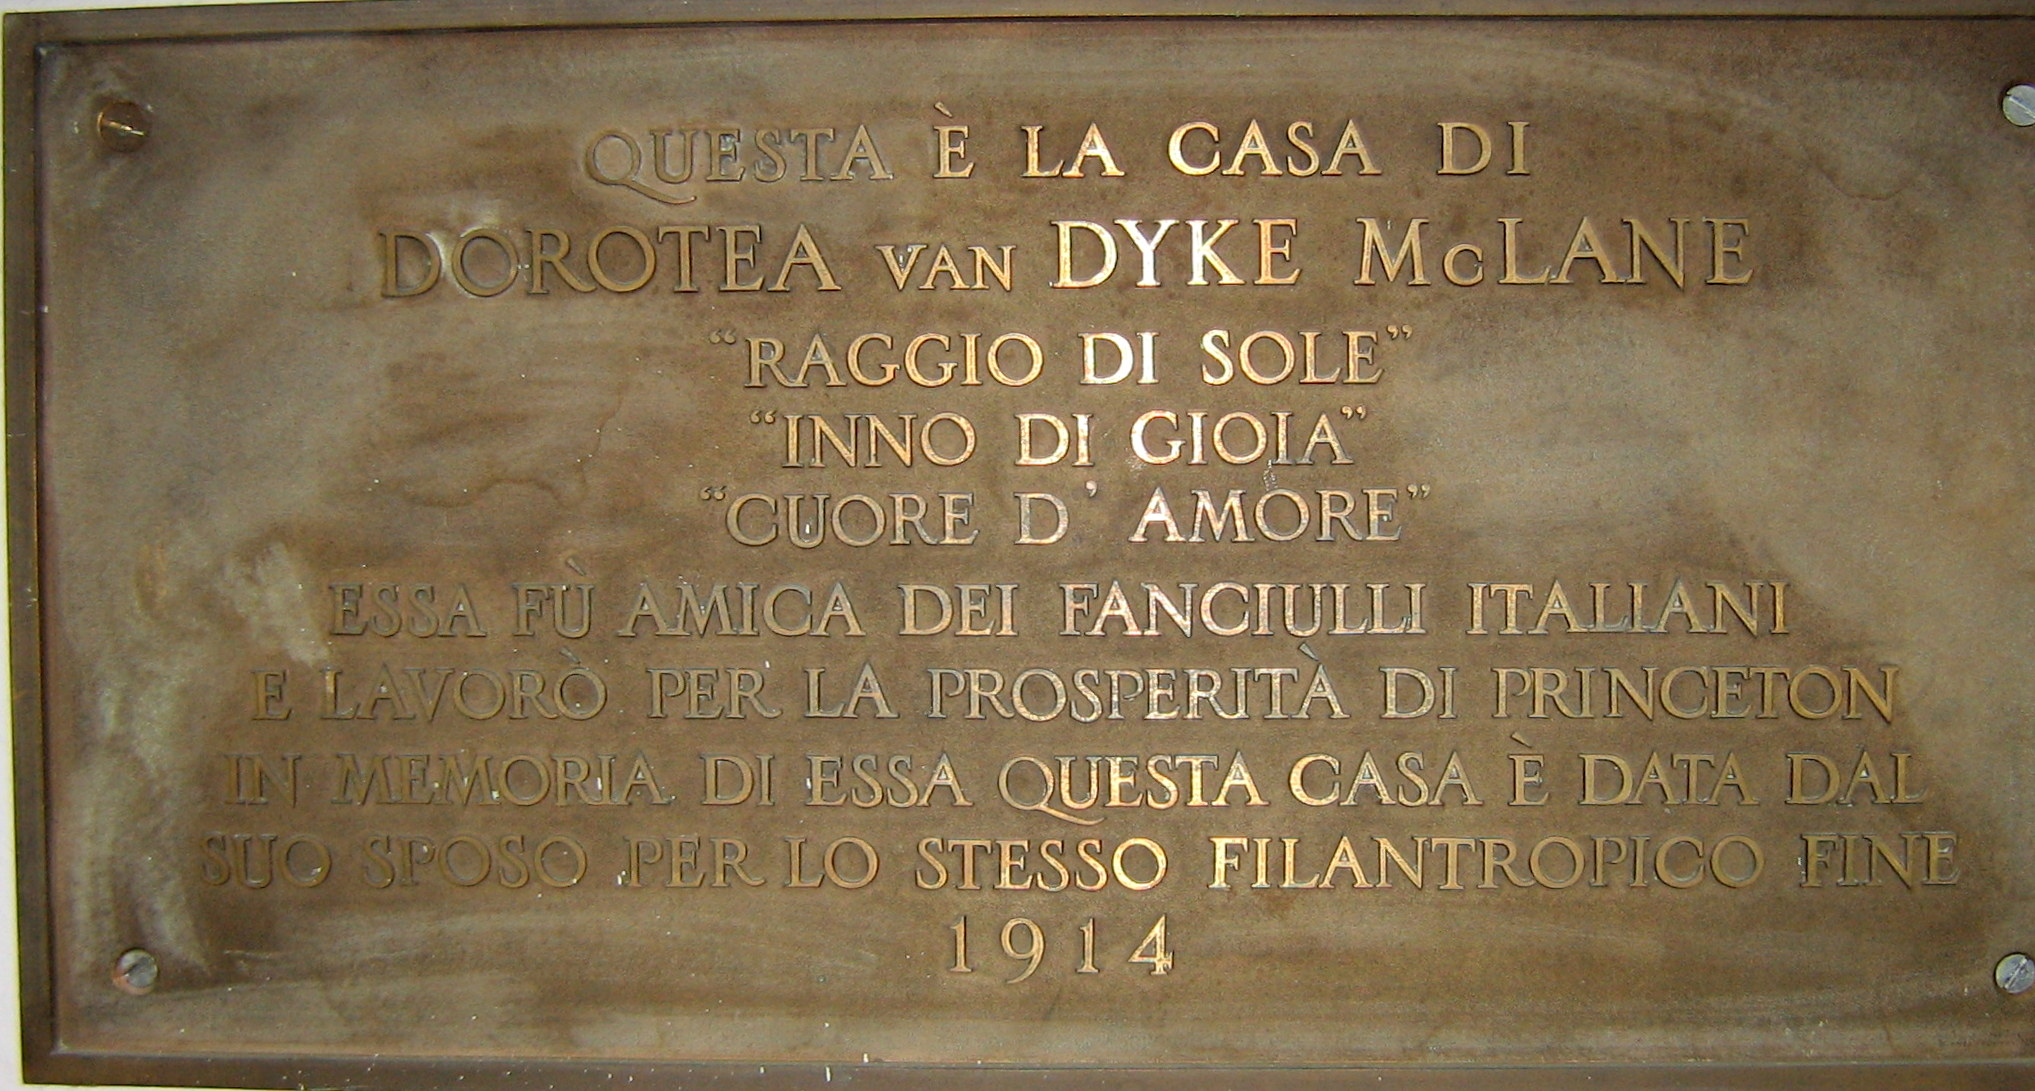 Memorial plaque in Dorothea's House in Italian